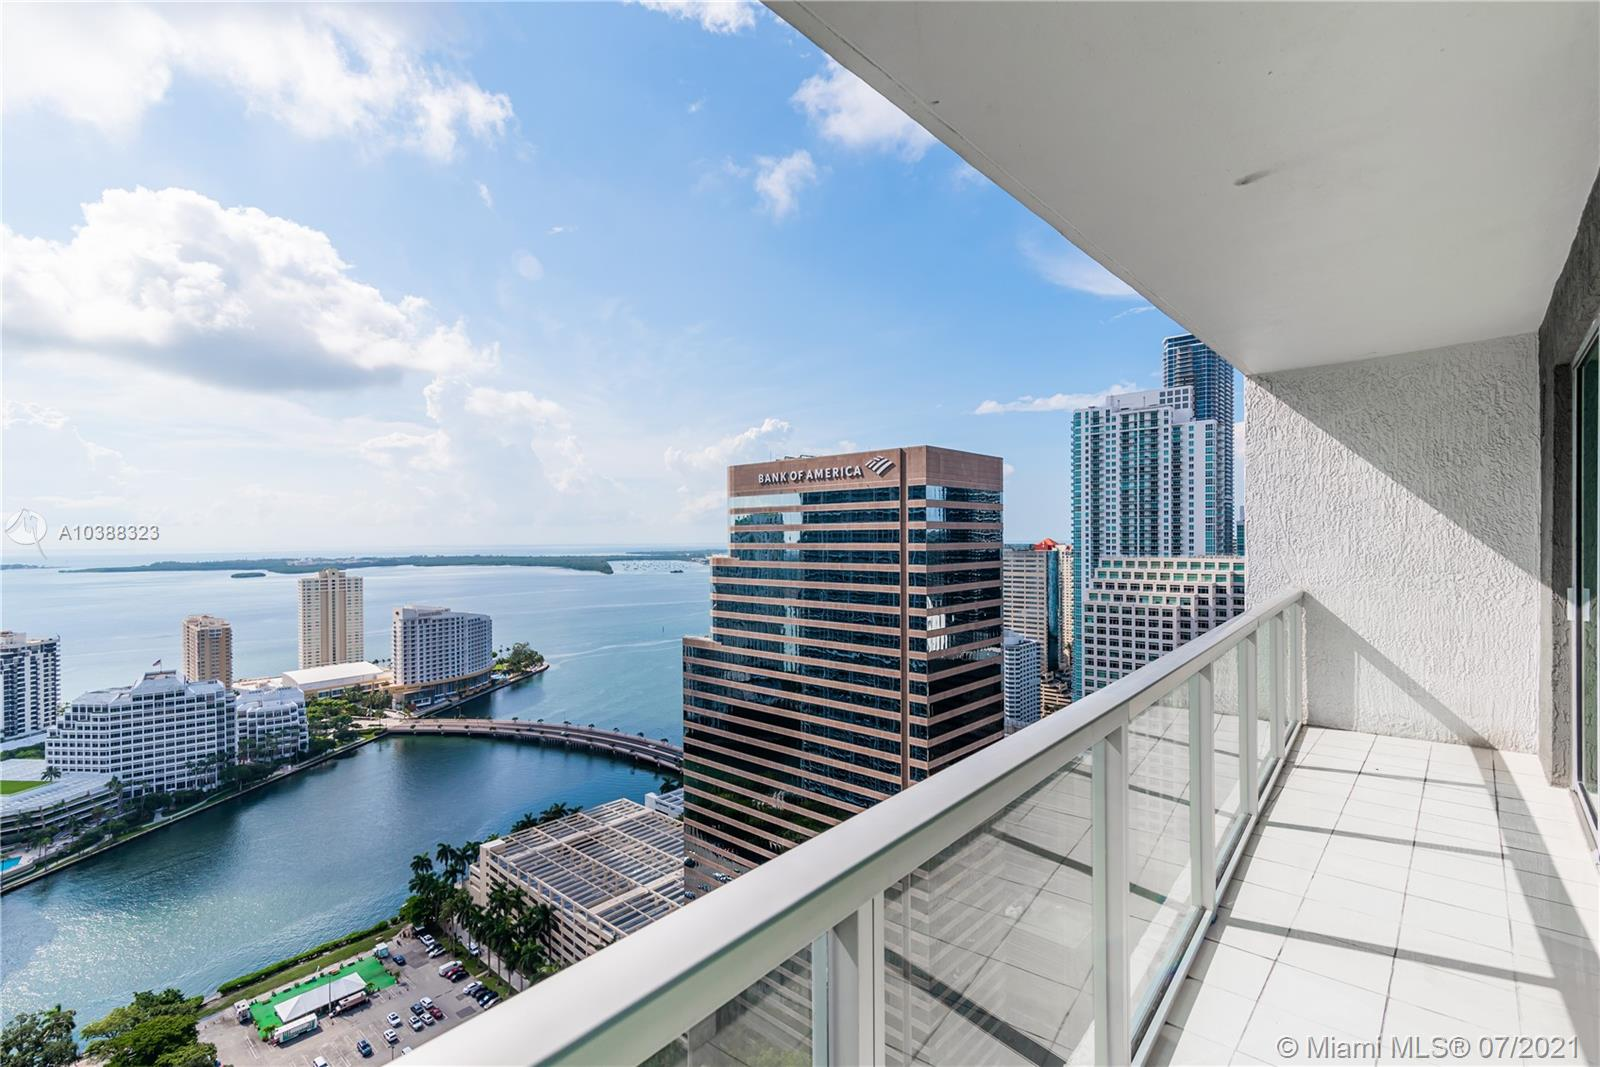 BEAUTIFUL SUB-PENTHOUSE ON THE 41 FLOORS WITH AMAZING VIEWS OF MIAMI RIVER, OCEAN AND BRICKELL CITY VIEW, WITH 3 BEDROOMS AND 3 BATHROOMS. 2 MASTER SUITE W/HUGE WALKING CLOSETS, WATER VIEWS FROM EACH ROOM AS WELL, RARE TO FIND ,WALKING DISTANCE TO ALL THE RESTAURANT AND MALL BRICKELL CITY CENTER, VERY BRIGHT UNIT. ITALIAN KITCHEN, GRANITE COUNTER TOP. TOP OF THE LINE APPLIANCES.ACCESS TO THE ROOF TOP OF THE BUILDING.NEW FRIDGE, NEW BLACKOUT SYSTEM, FRESHLY PAINT, NEW BACKSPLASH NEED TO SEE IT....DROP PRICE FOR A FASTER SELL, UNIT BELOW WAS SOLD FOR 715,000 AND WE ARE OPEN TO ANY OFFER.. CALL NOW....